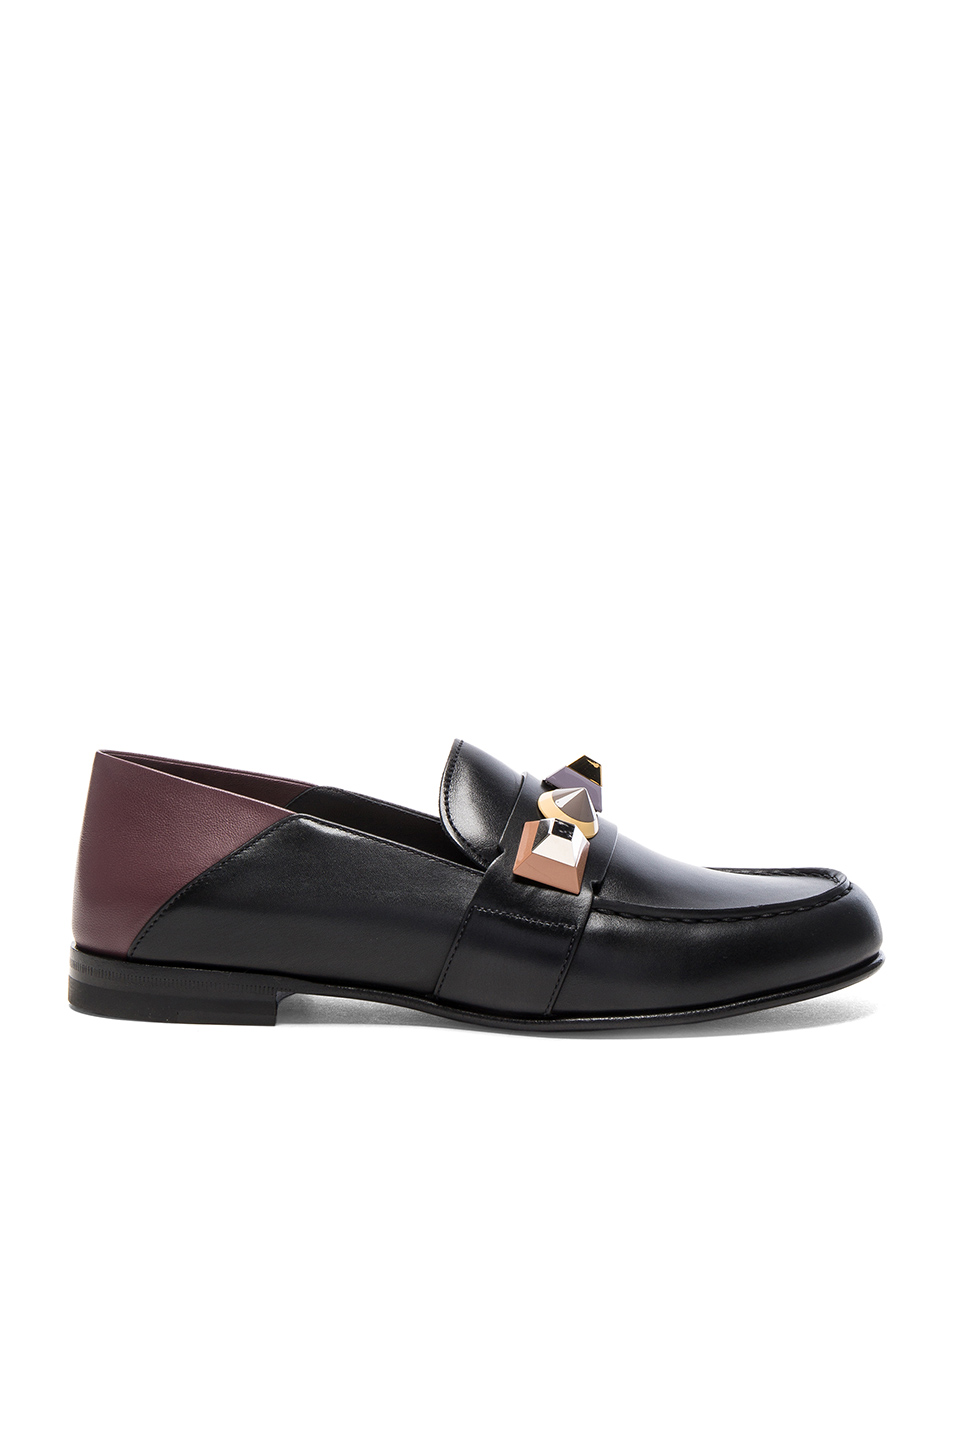 Fendi Stud Leather Loafers in Black